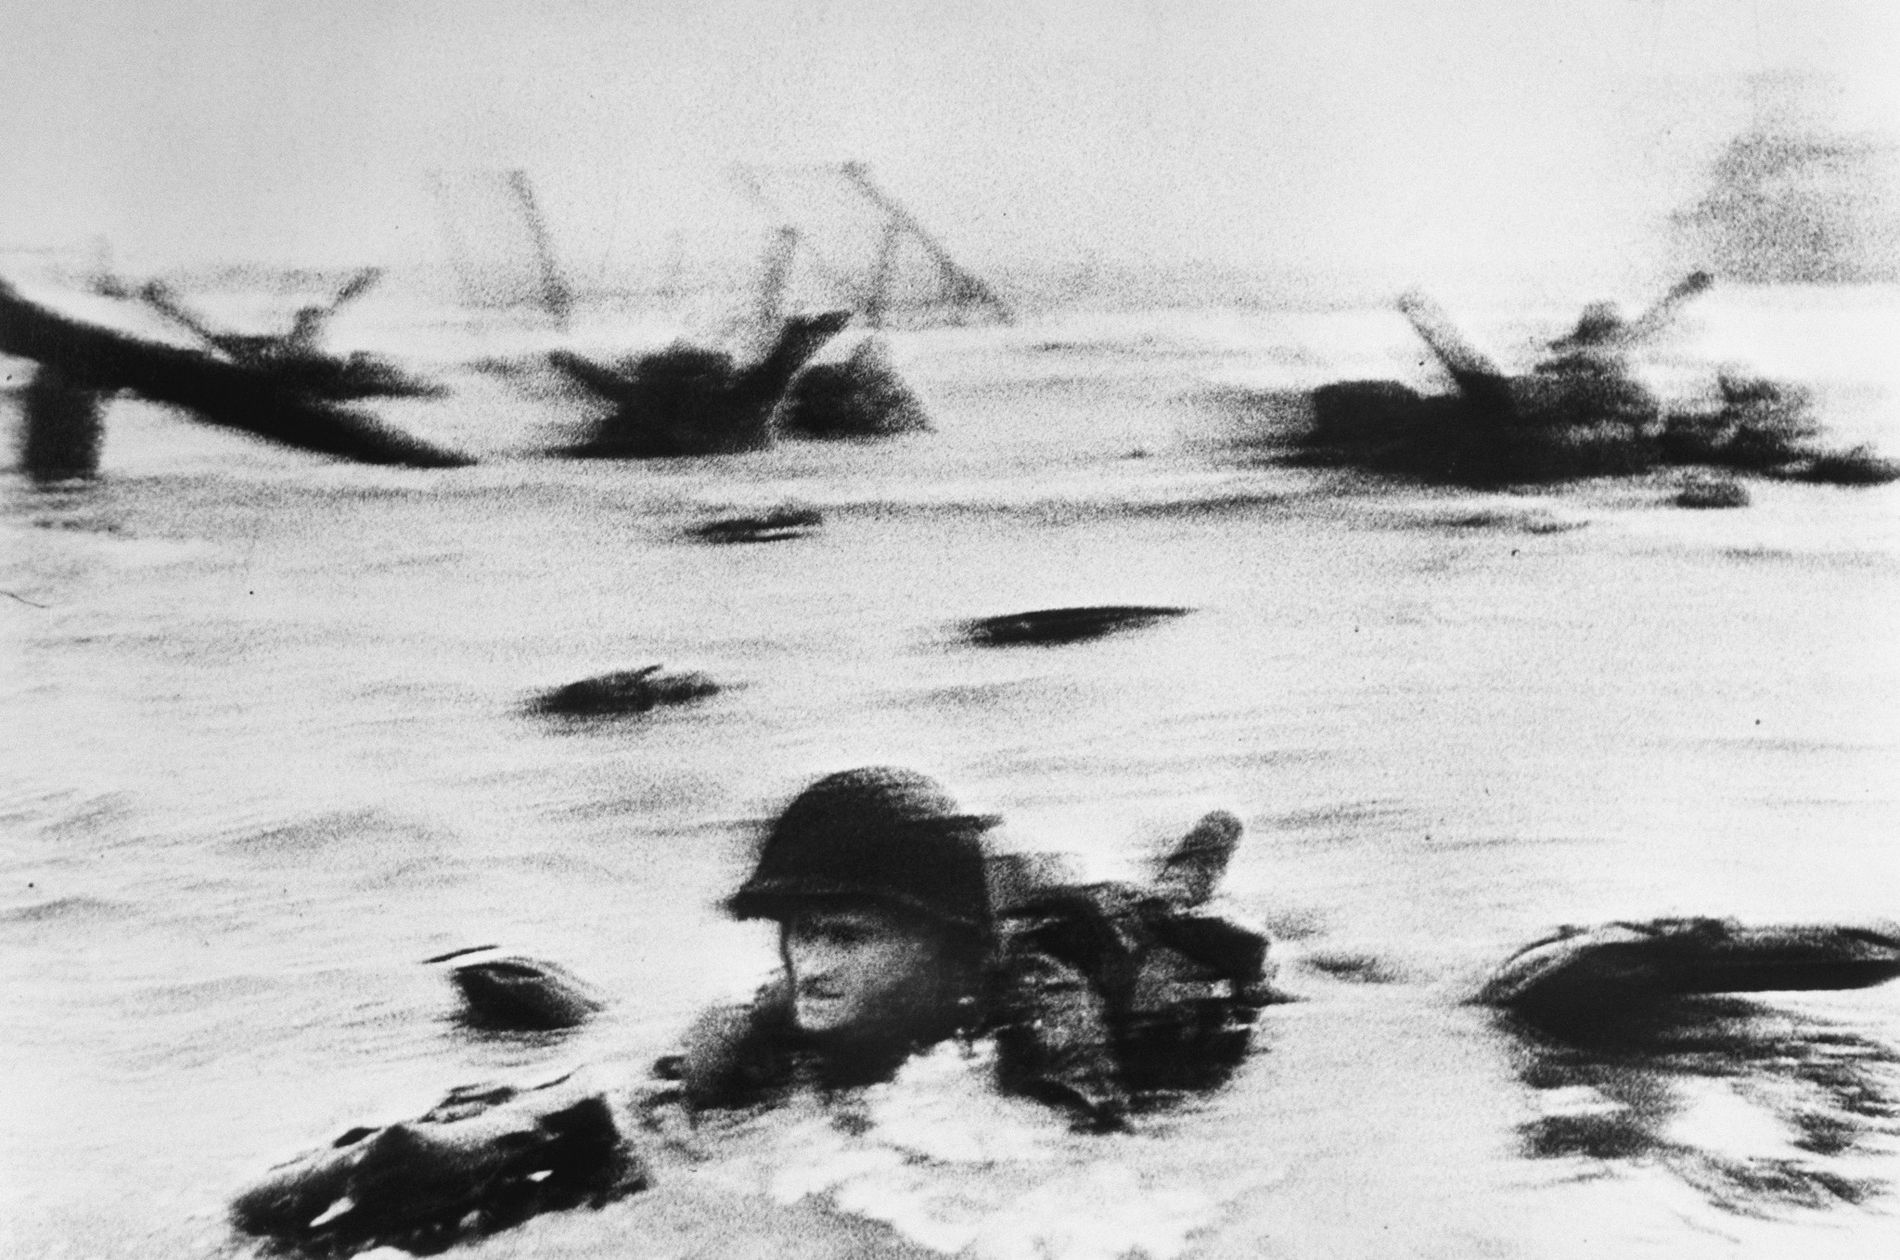 <p>War photographer Robert Capa accompanied the first wave of troops as they faced enemy fire and captured some of the most searing images of D-Day.</p>